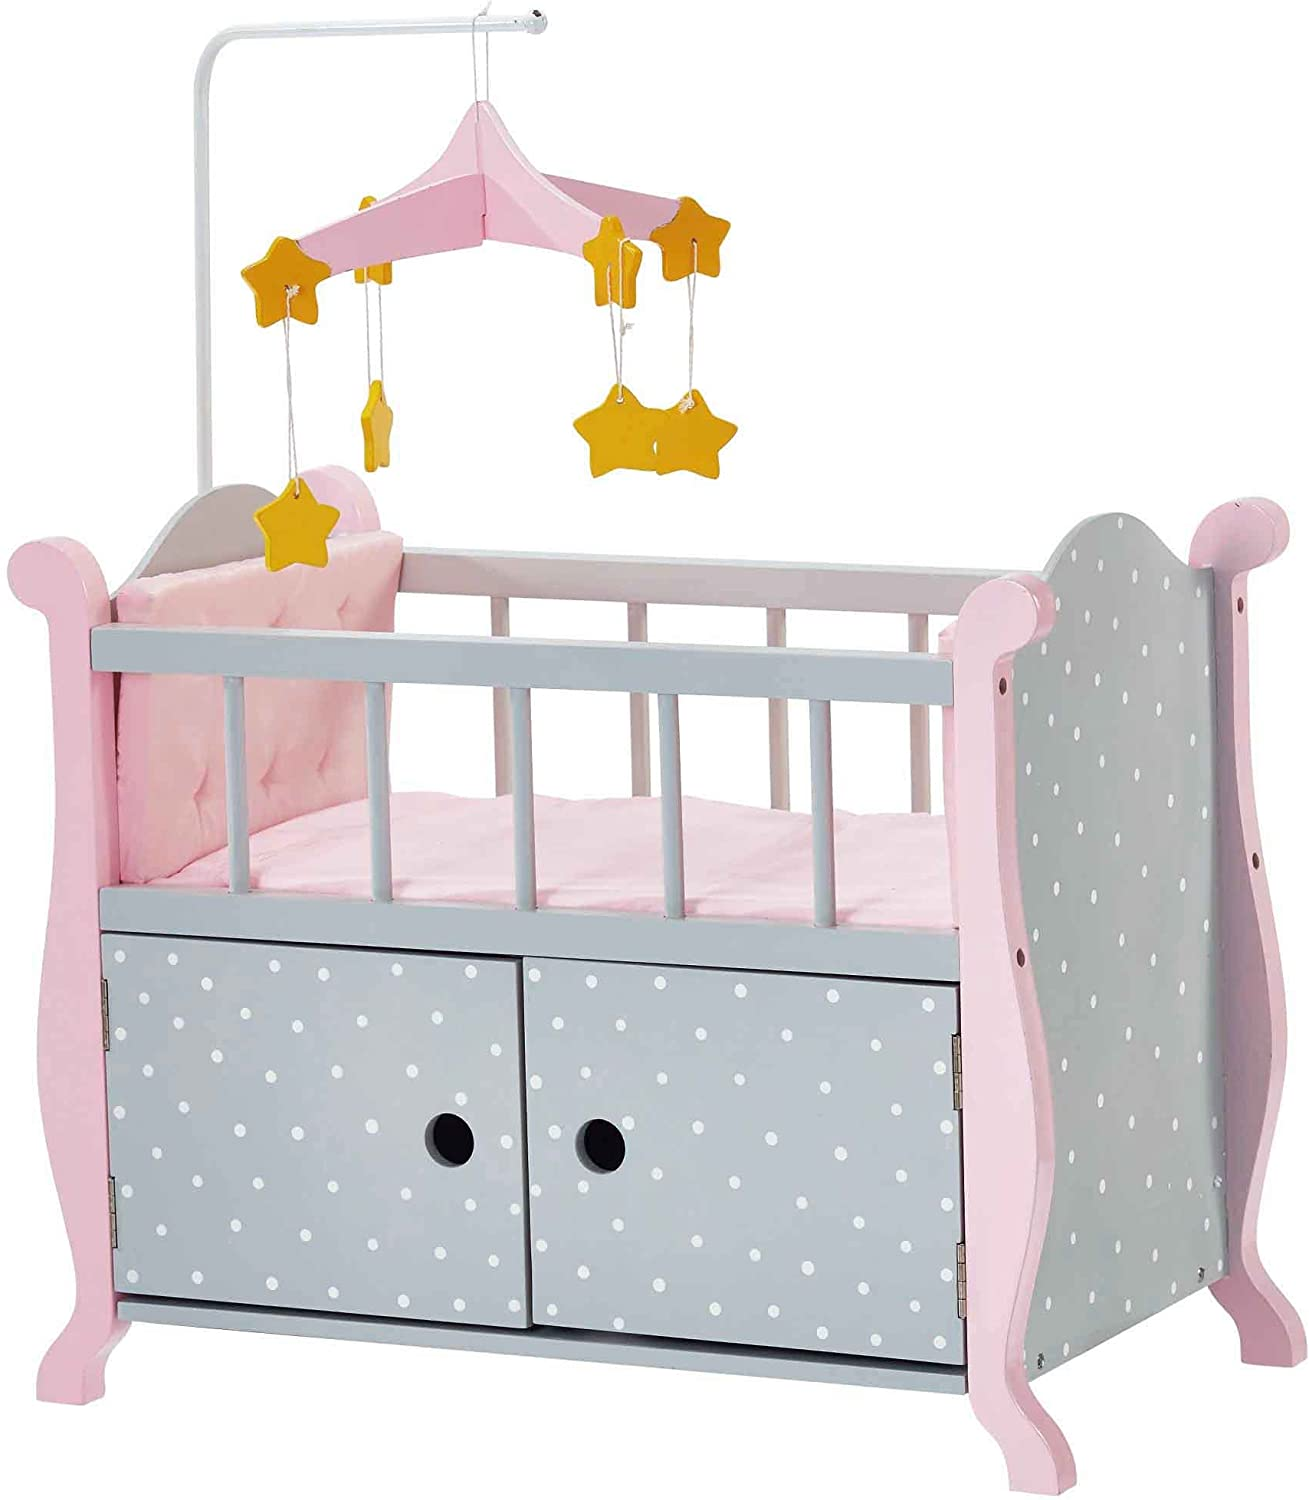 Olivia's Little World  18  Baby Wooden Doll Furniture, Polka Dots Princess Nursery Crib Bed with Storage Cabinet (Grey)